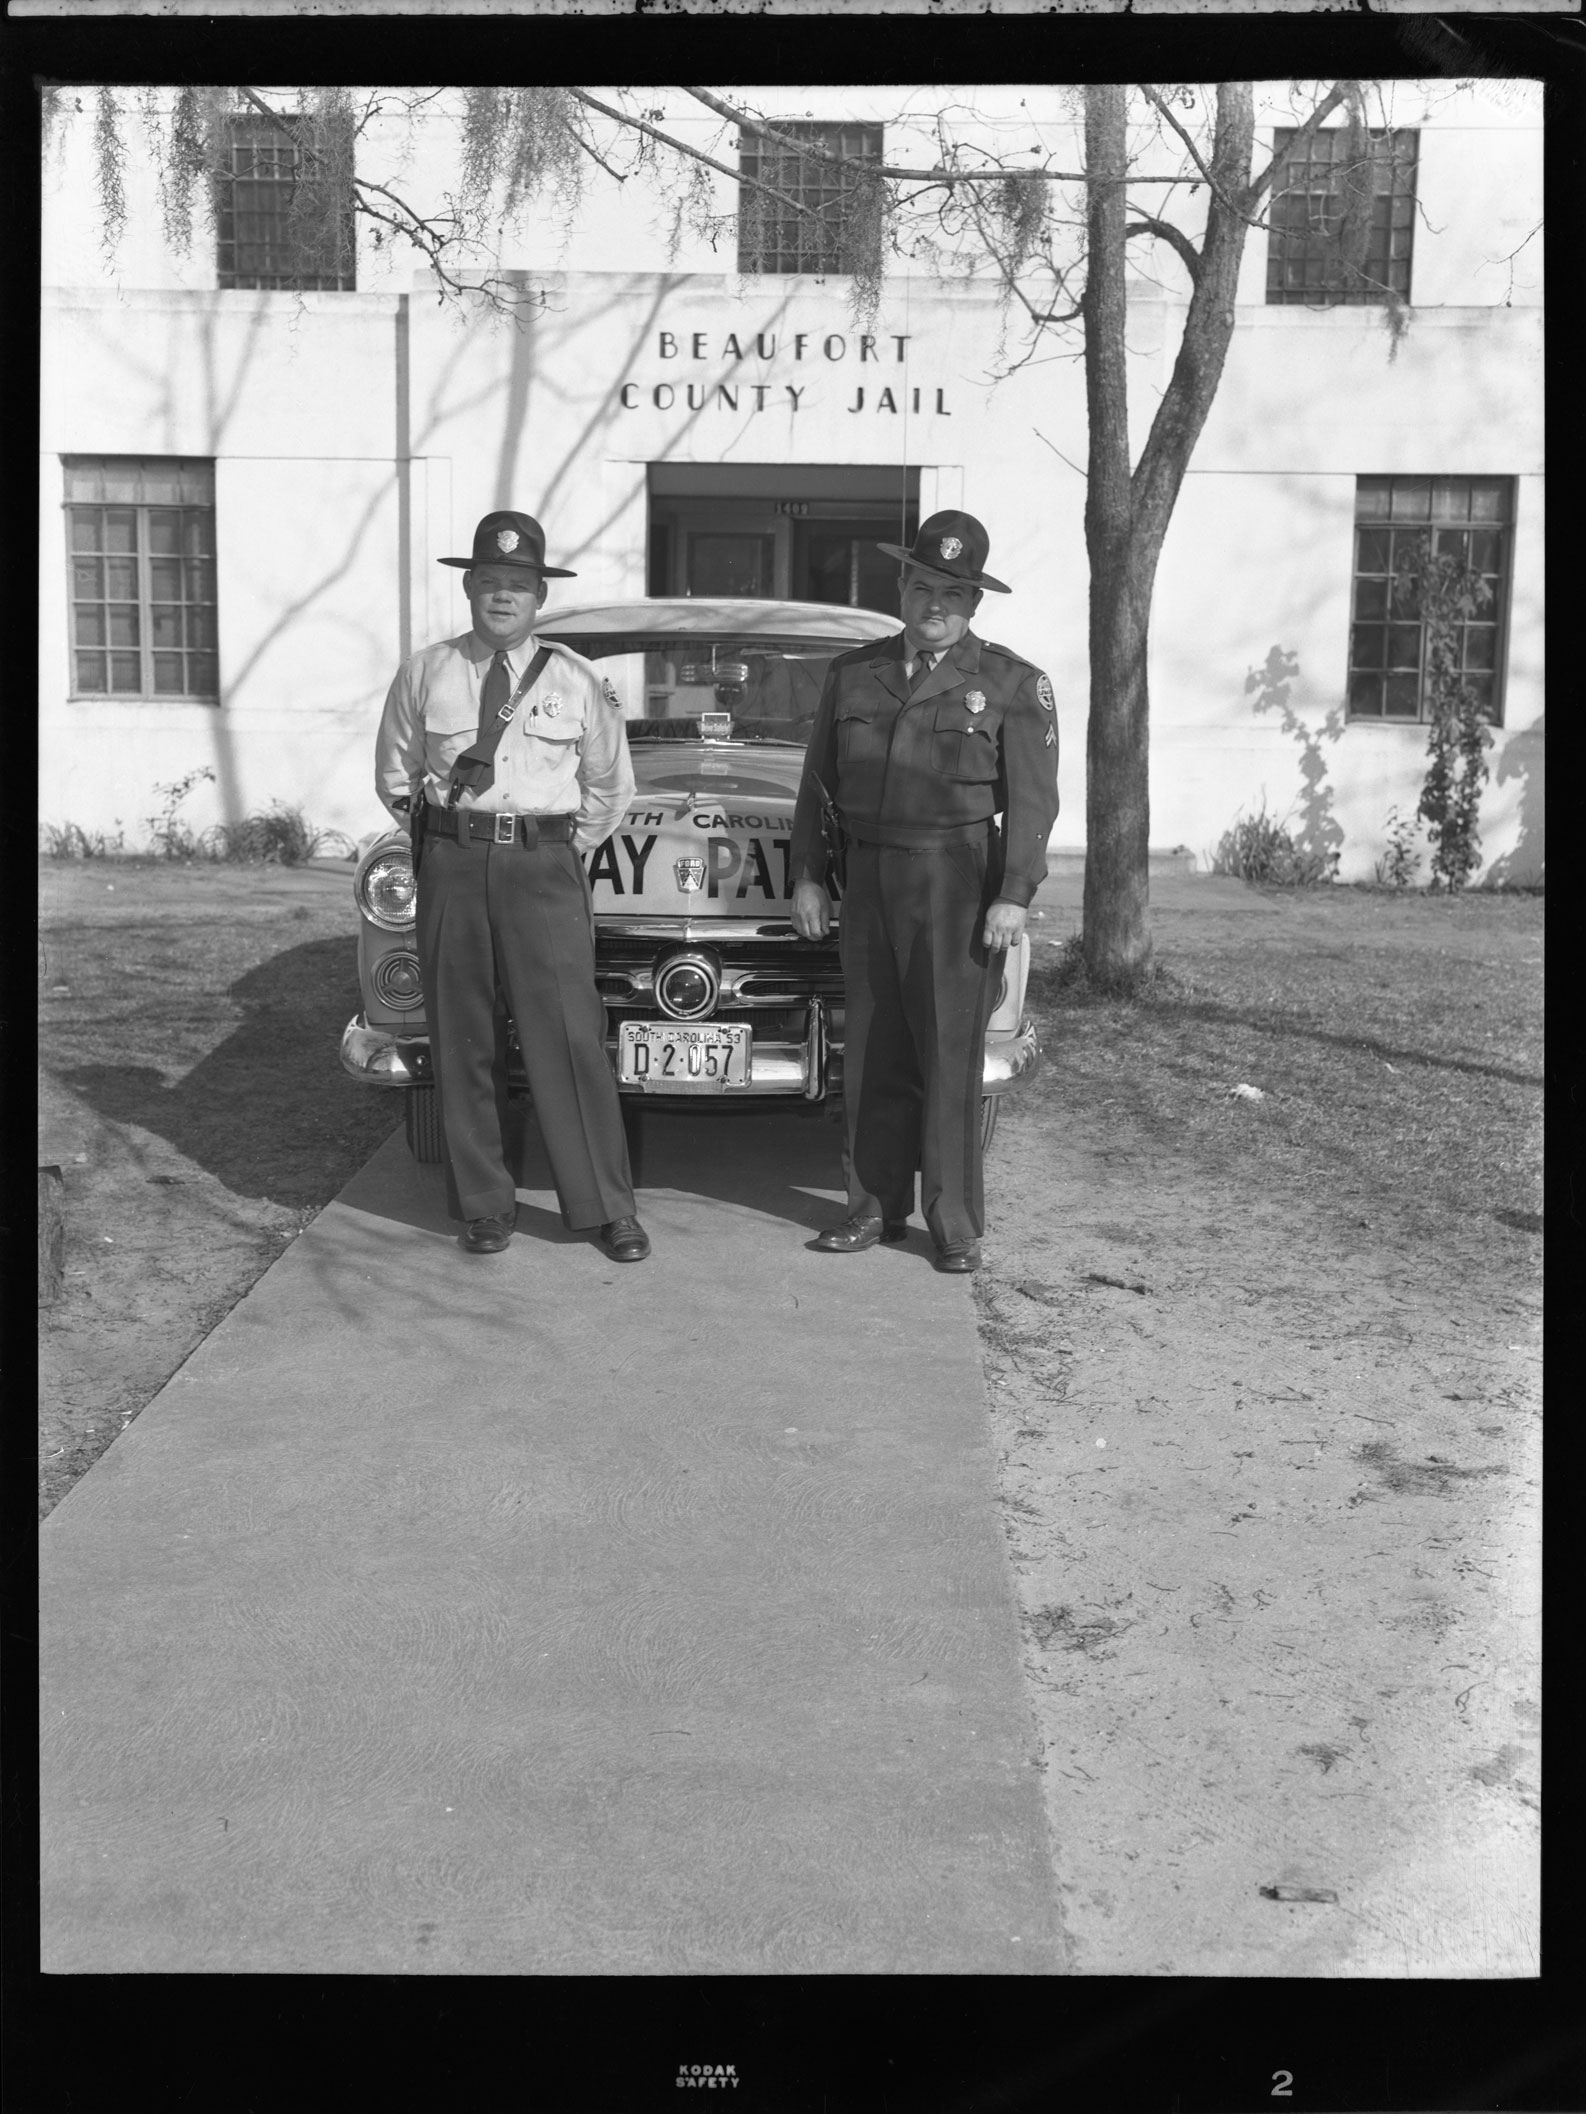 Highway Patrolmen and Car in front of Beaufort County Jail